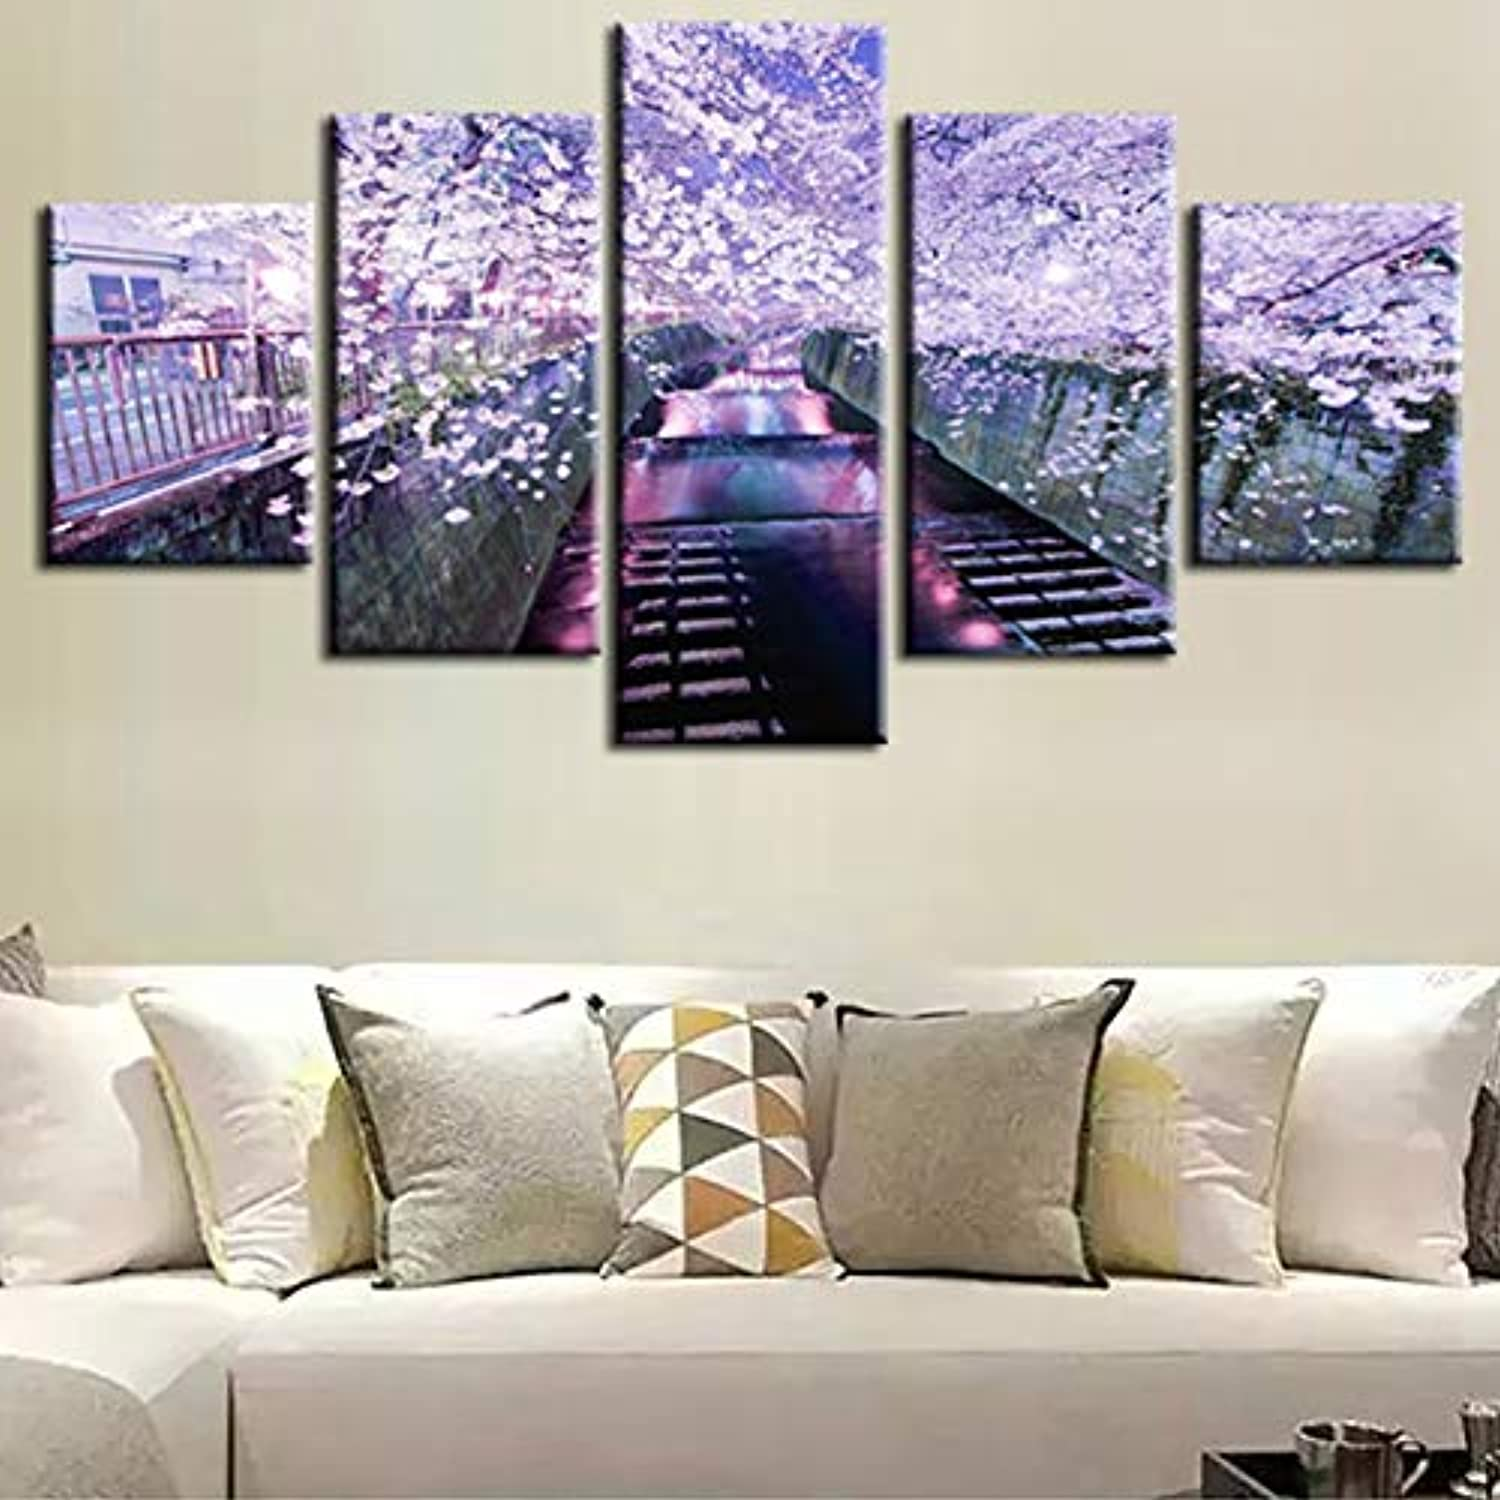 Wall Art Pictures Home Decor Poster 5 Panel Beautiful Flower Street Night Landscape Frame Living Room HD Print Painting